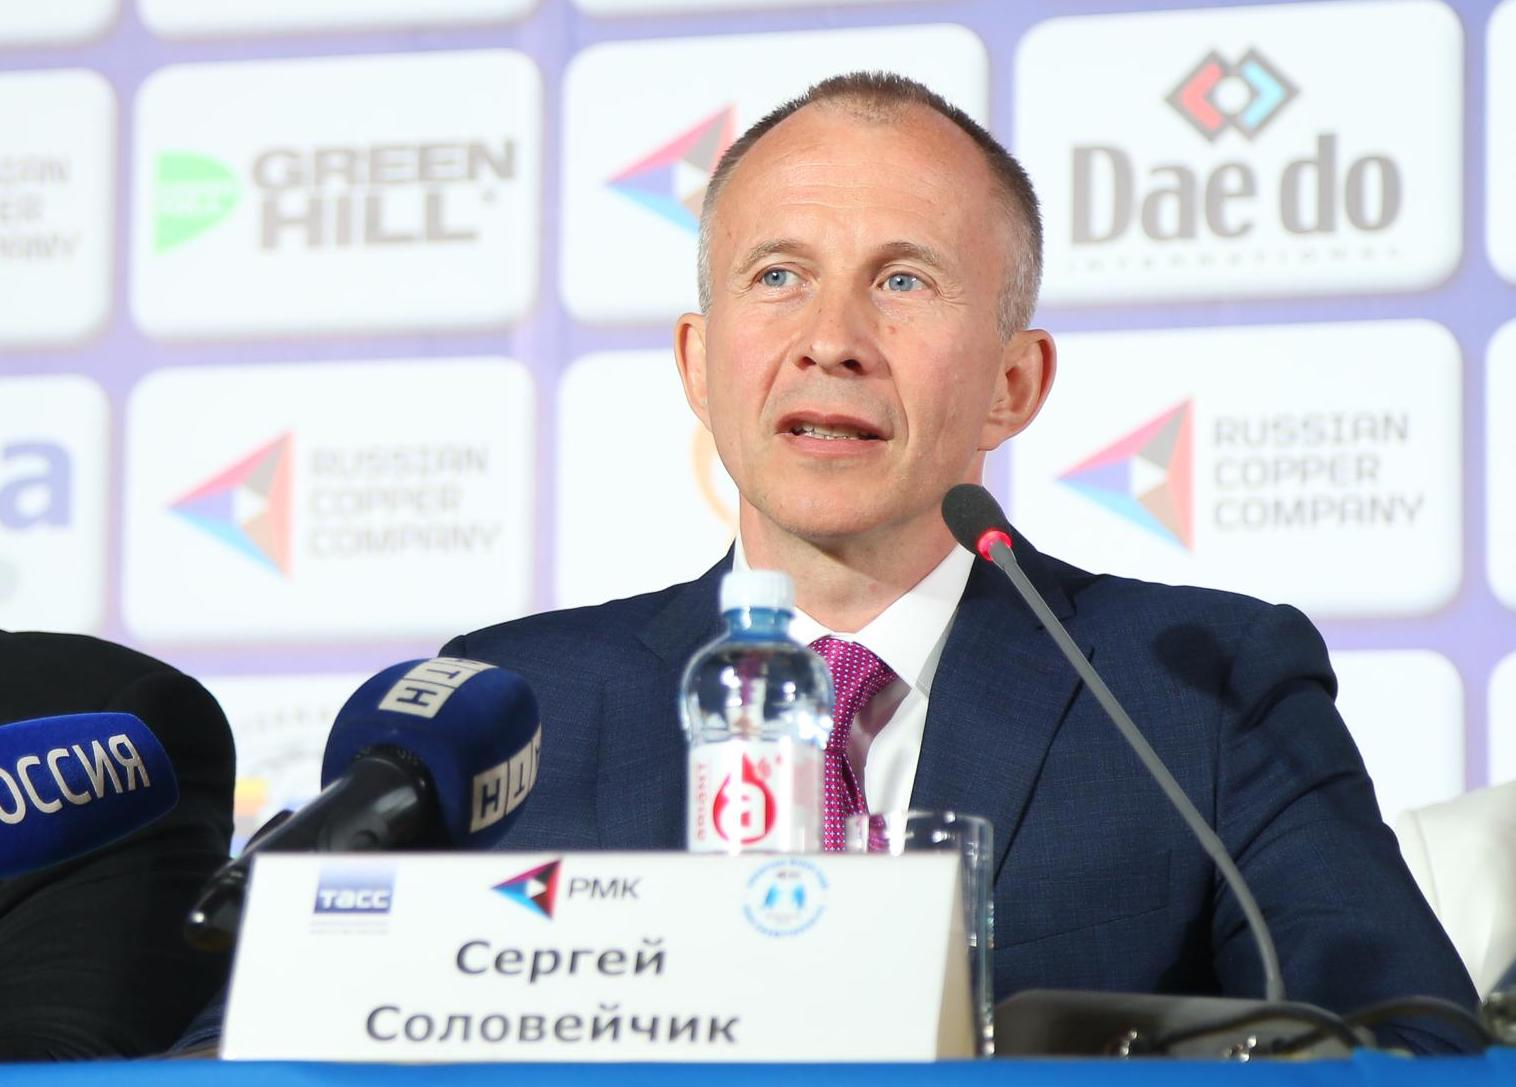 INVITATION: VIRTUAL PRESS CONFERENCE WITH SERGEY SOLOVEYCHIK